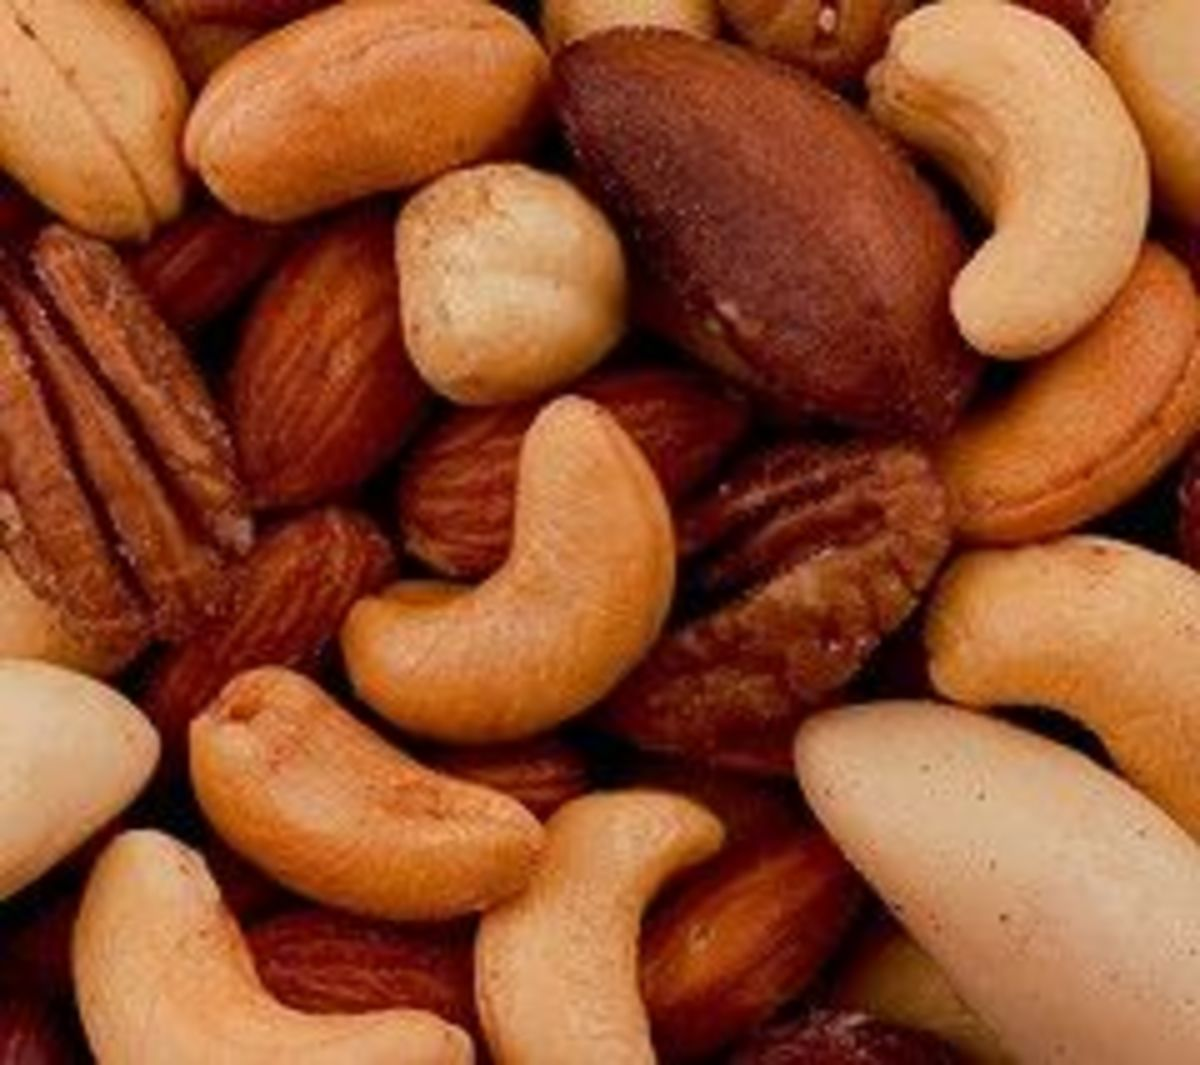 Nuts are a tasty snack -- peanuts are best for protein